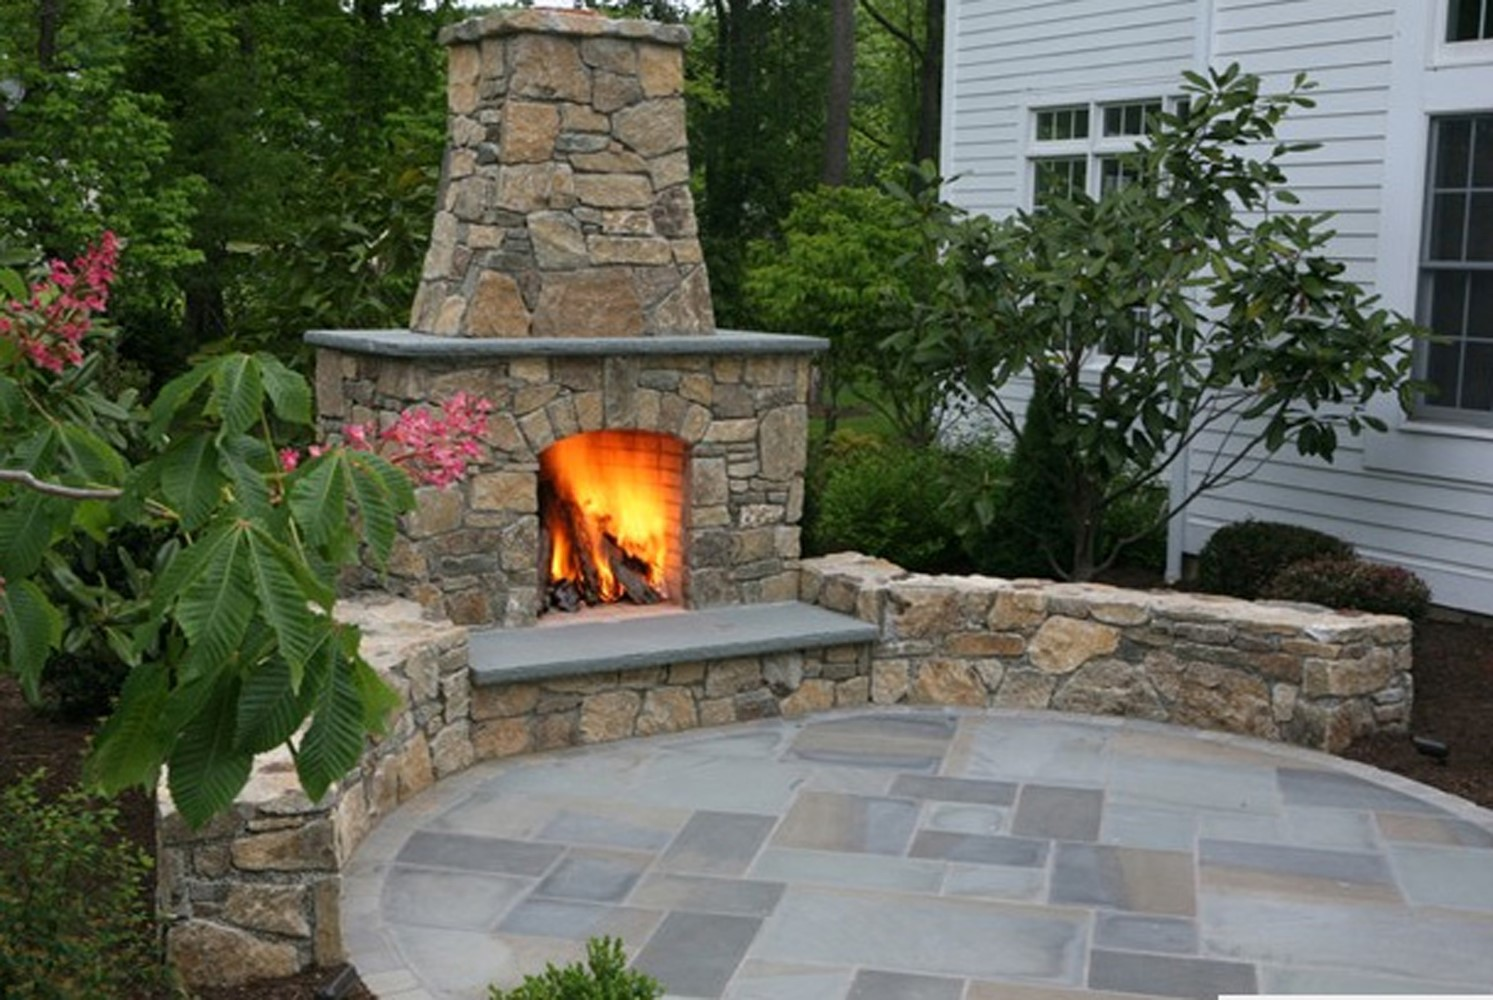 Hardscaping including Patios